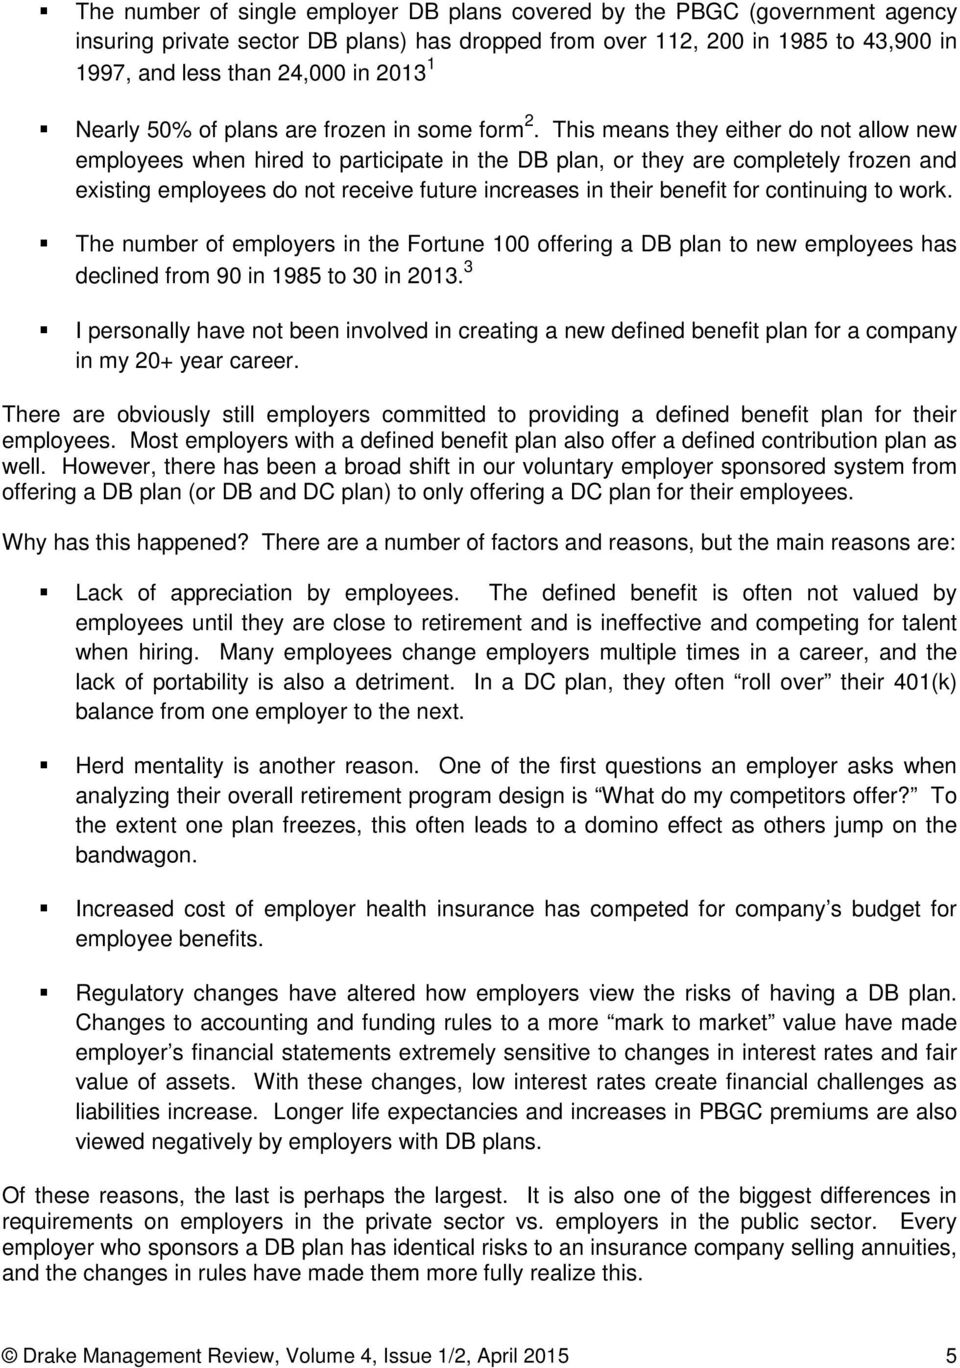 This means they either do not allow new employees when hired to participate in the DB plan, or they are completely frozen and existing employees do not receive future increases in their benefit for